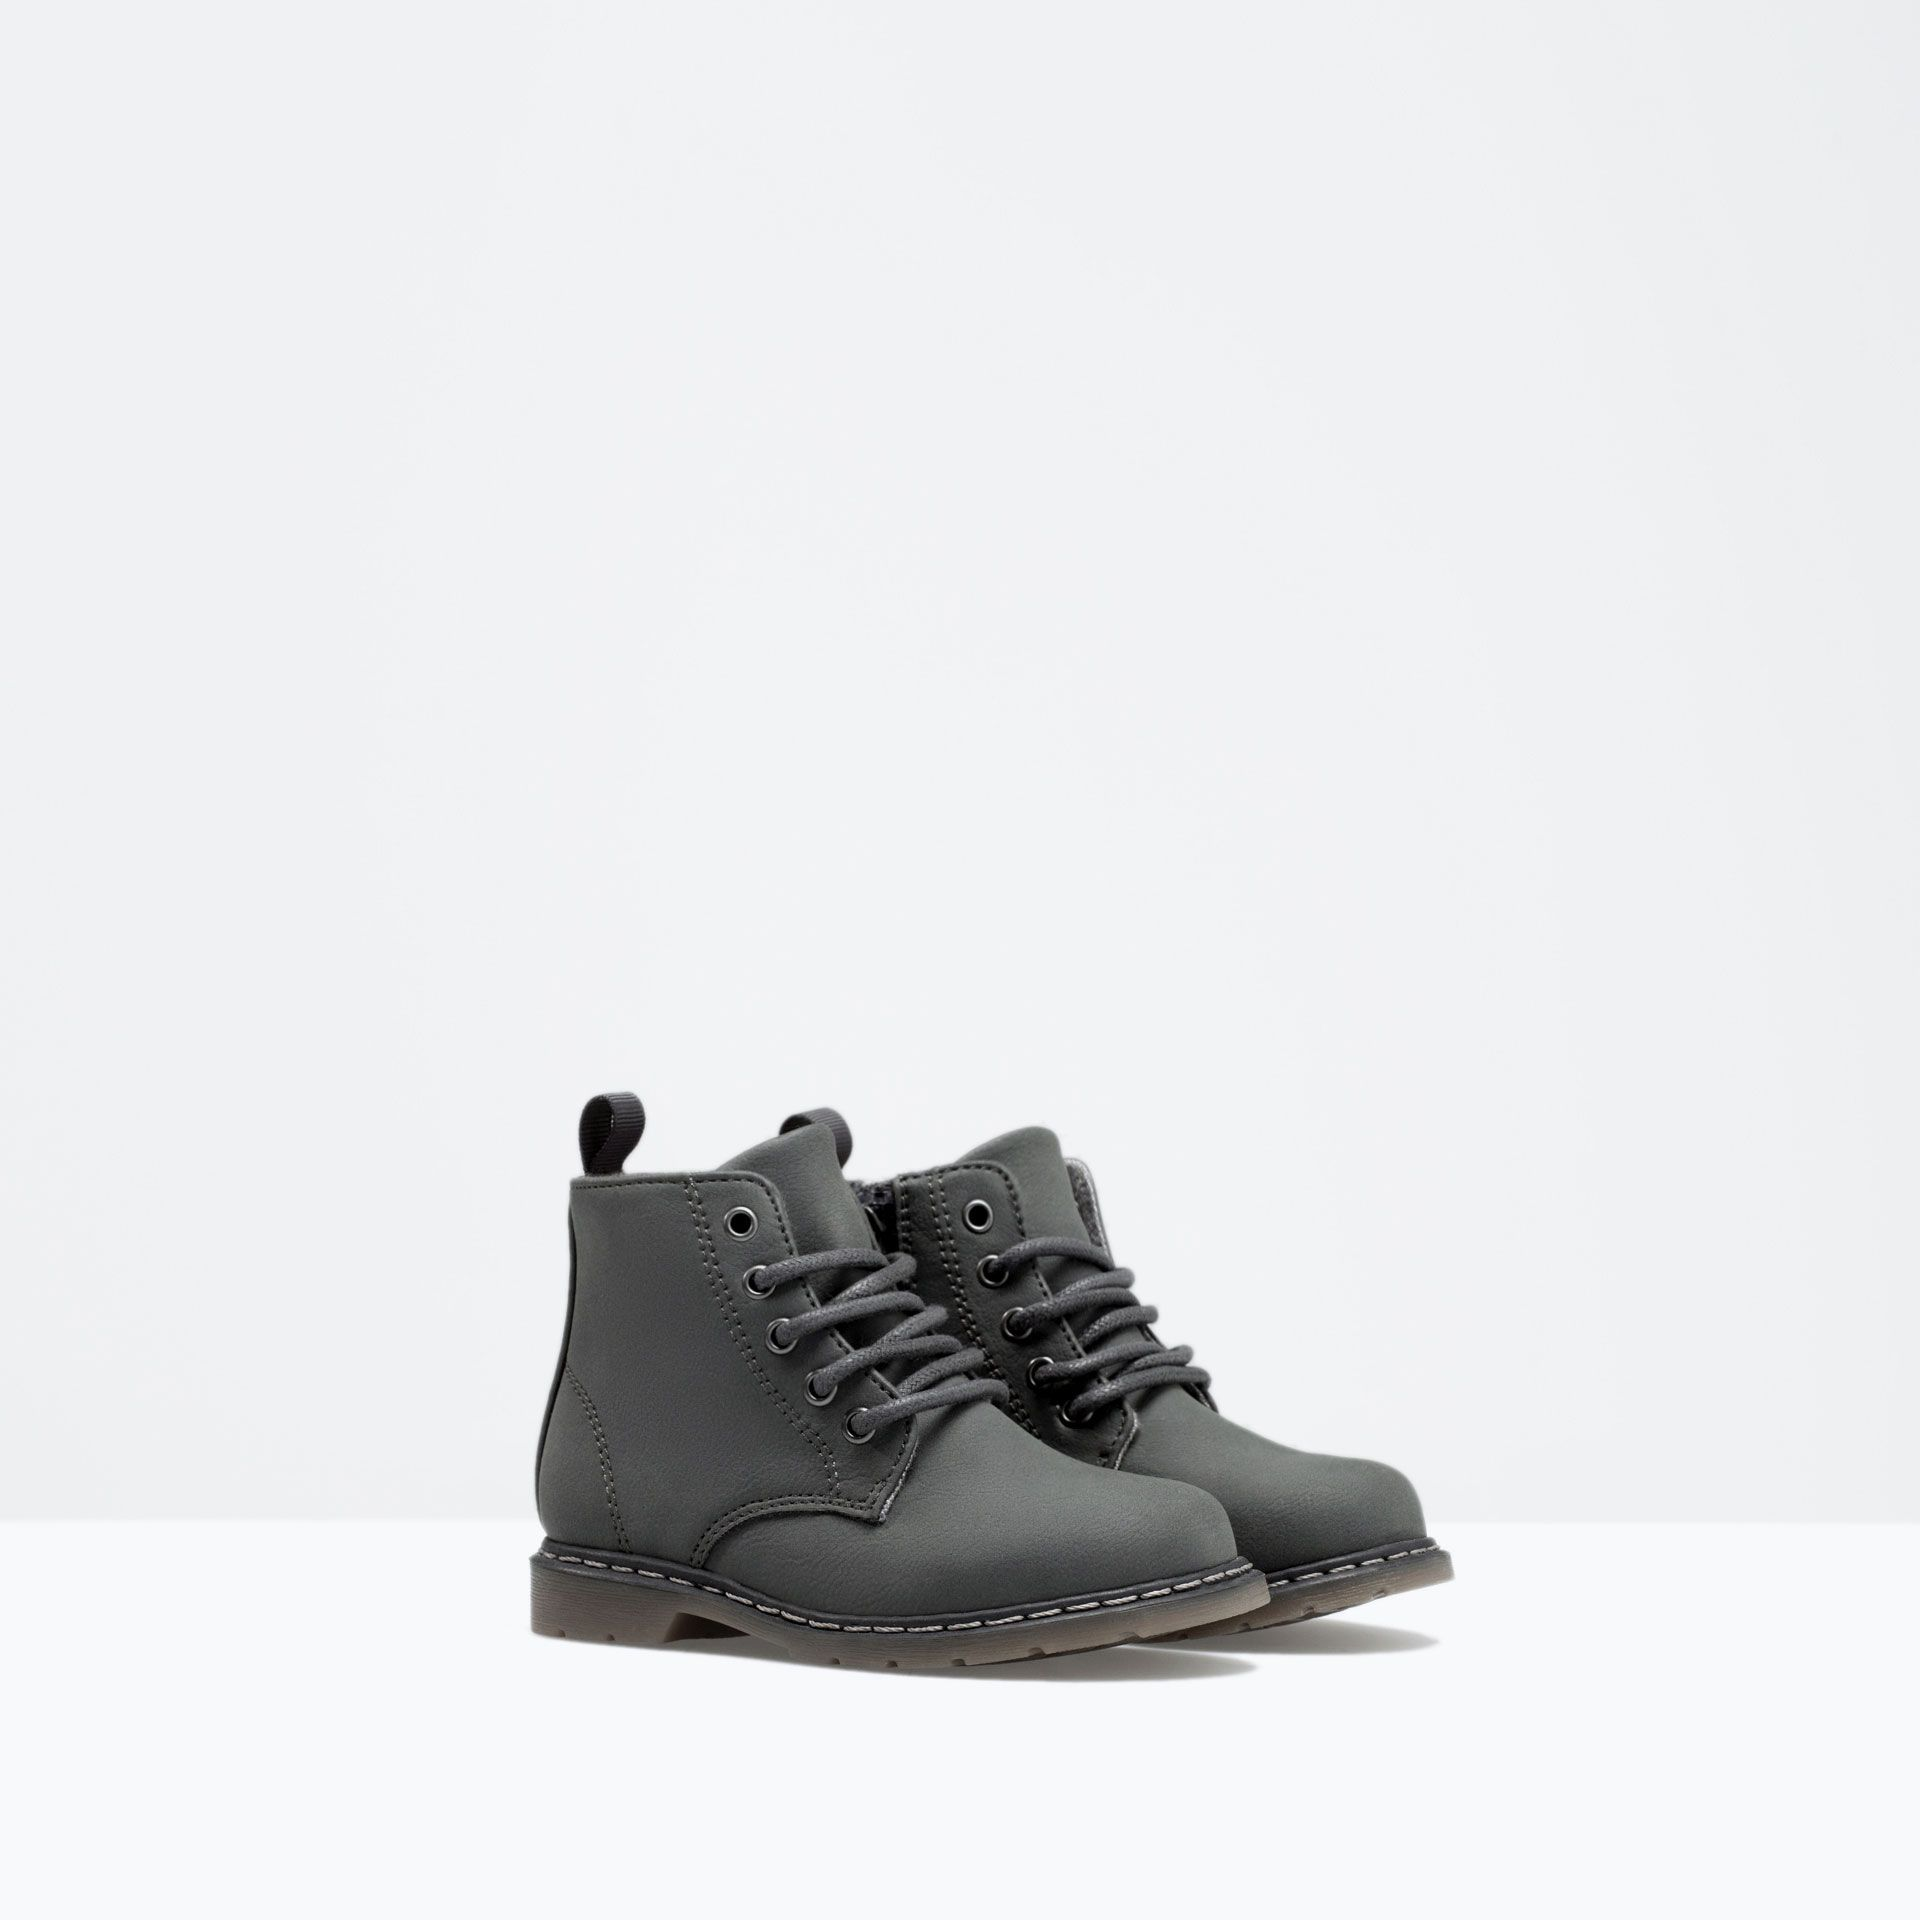 8c0cb4565 Lace-up boots with top stitching detail from Zara Baby Boy AW14 ...